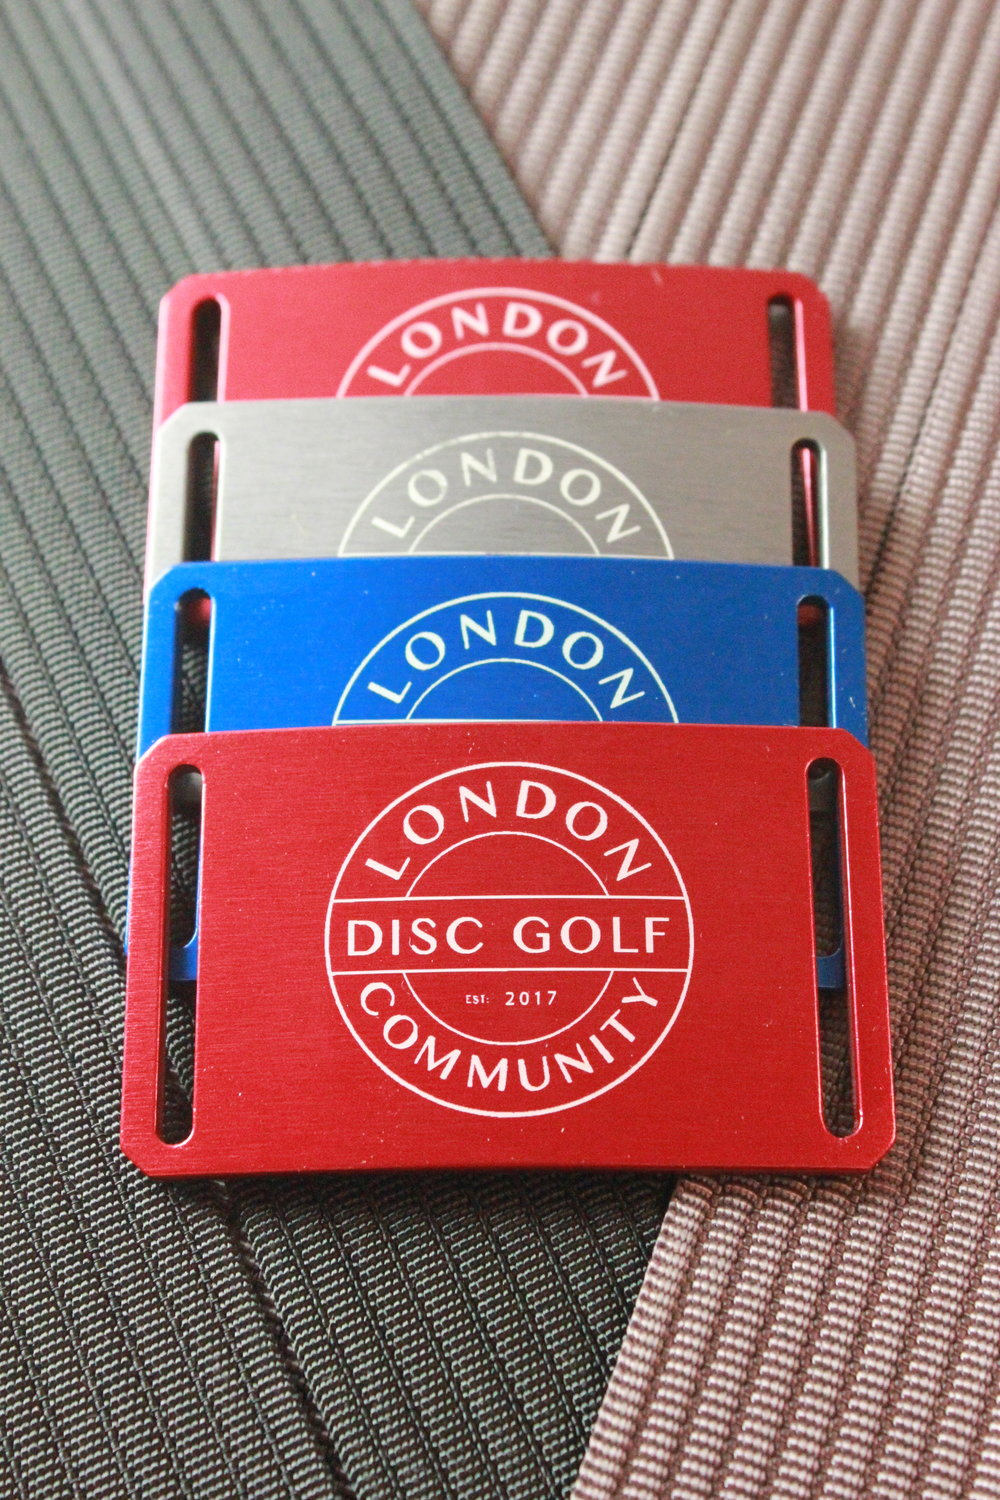 Limited Custom Grip6 Belts - London Disc Golf Community Design - £30